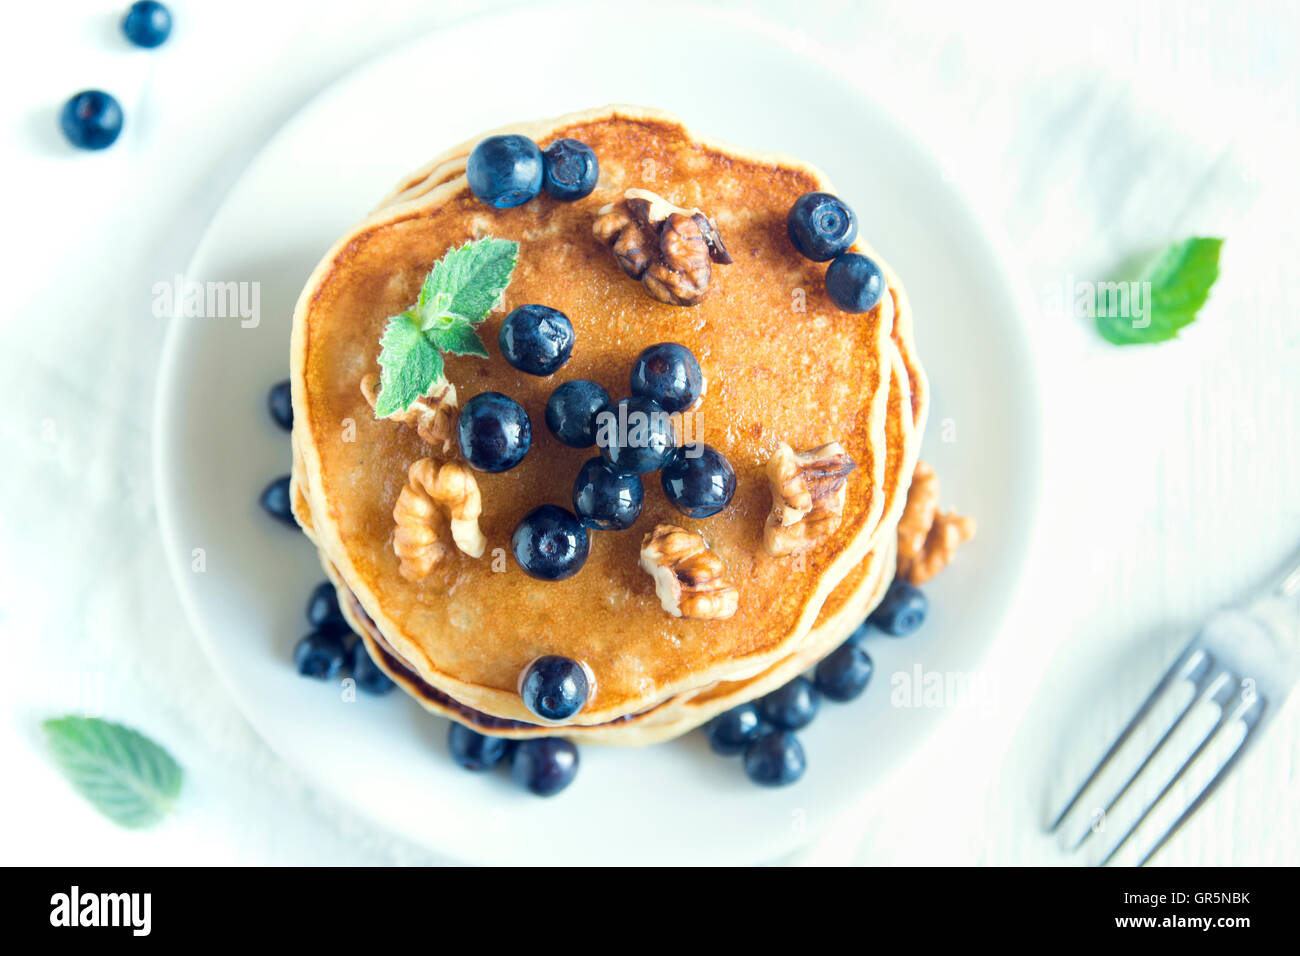 Homemade pancakes with blueberry, honey and walnuts for breakfast (top view) - Stock Image